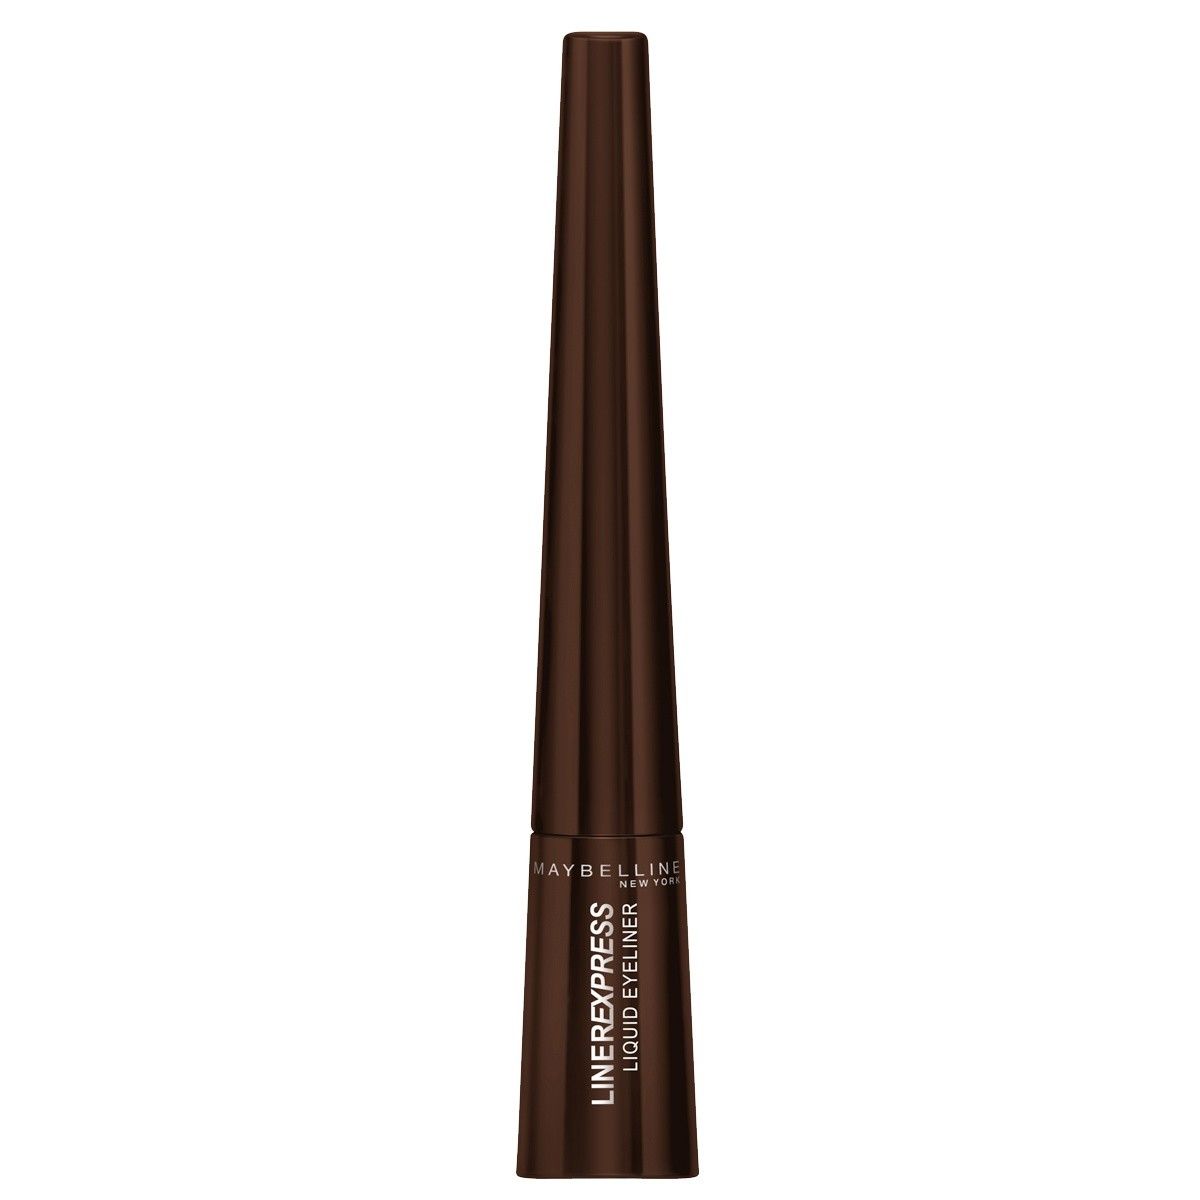 Delineador Maybelline Linerexpress Brown